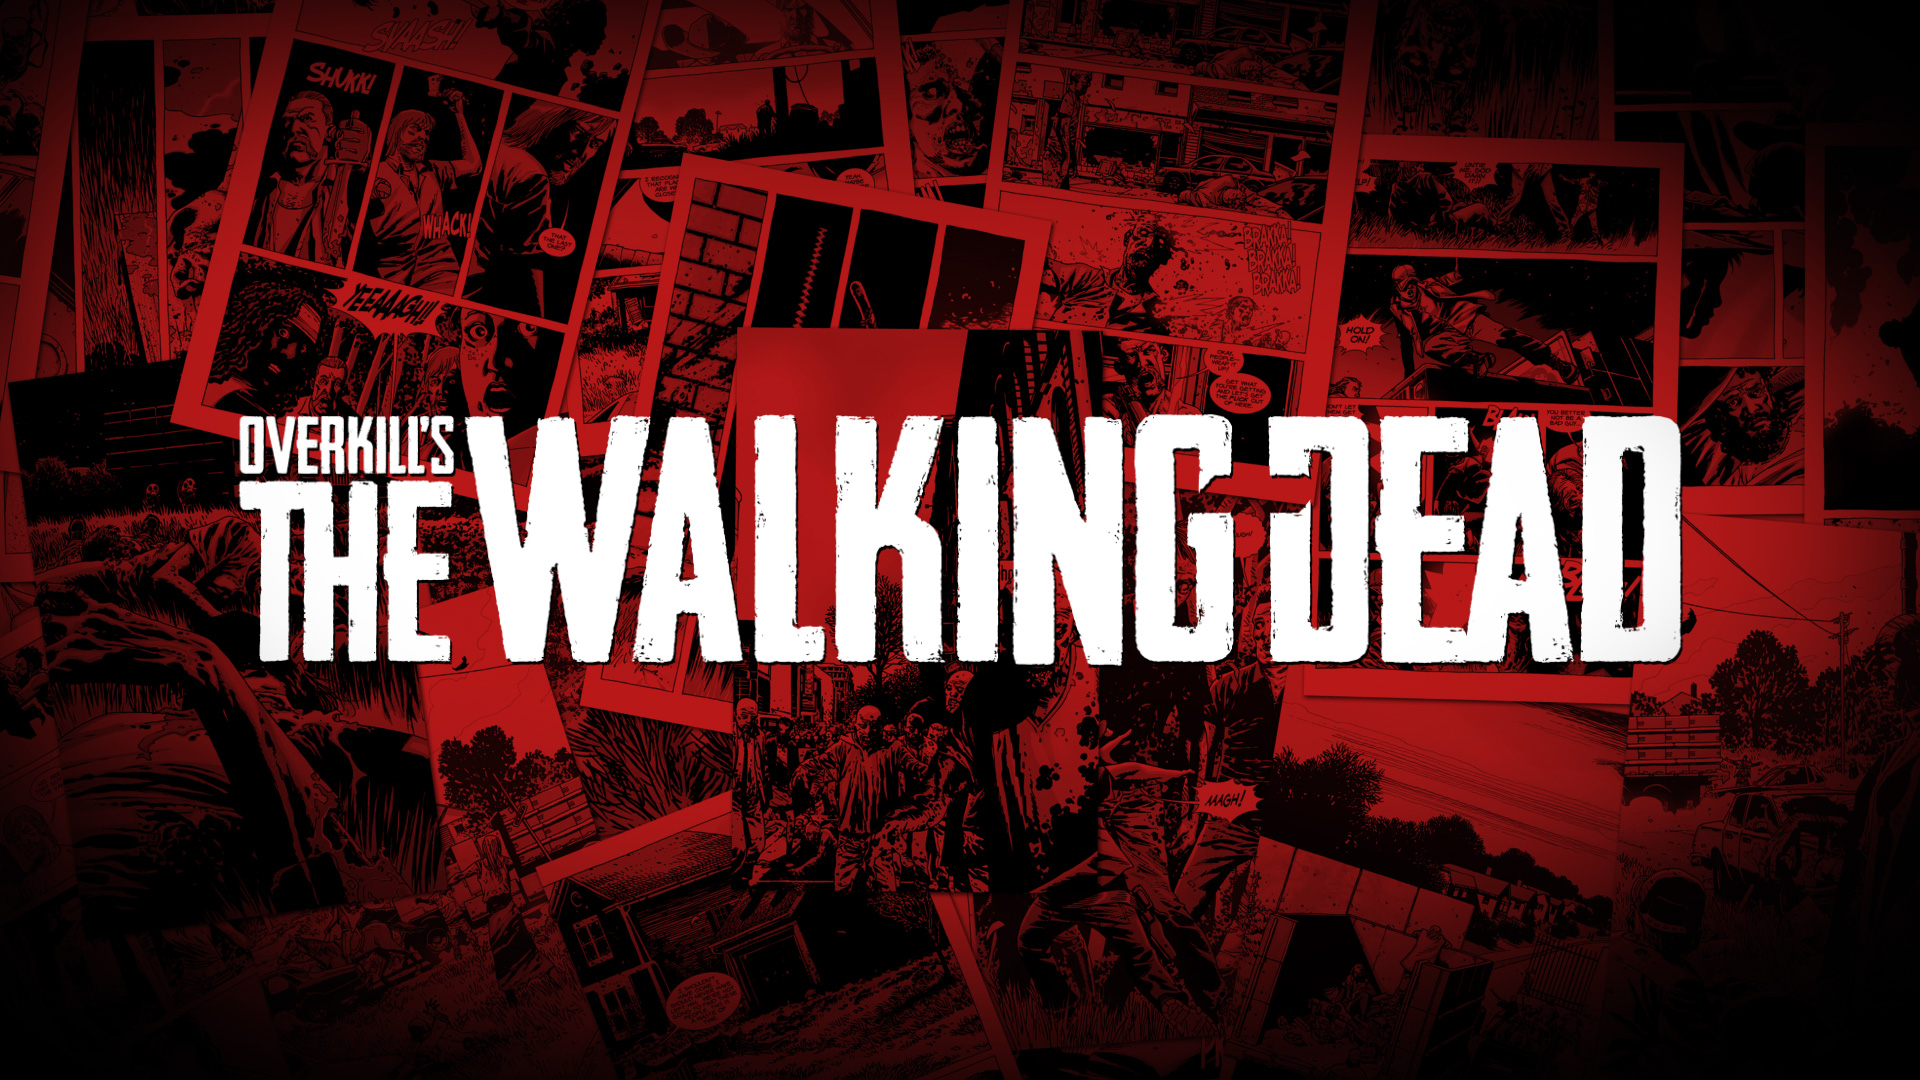 Copy of Overkill's The Walking Dead